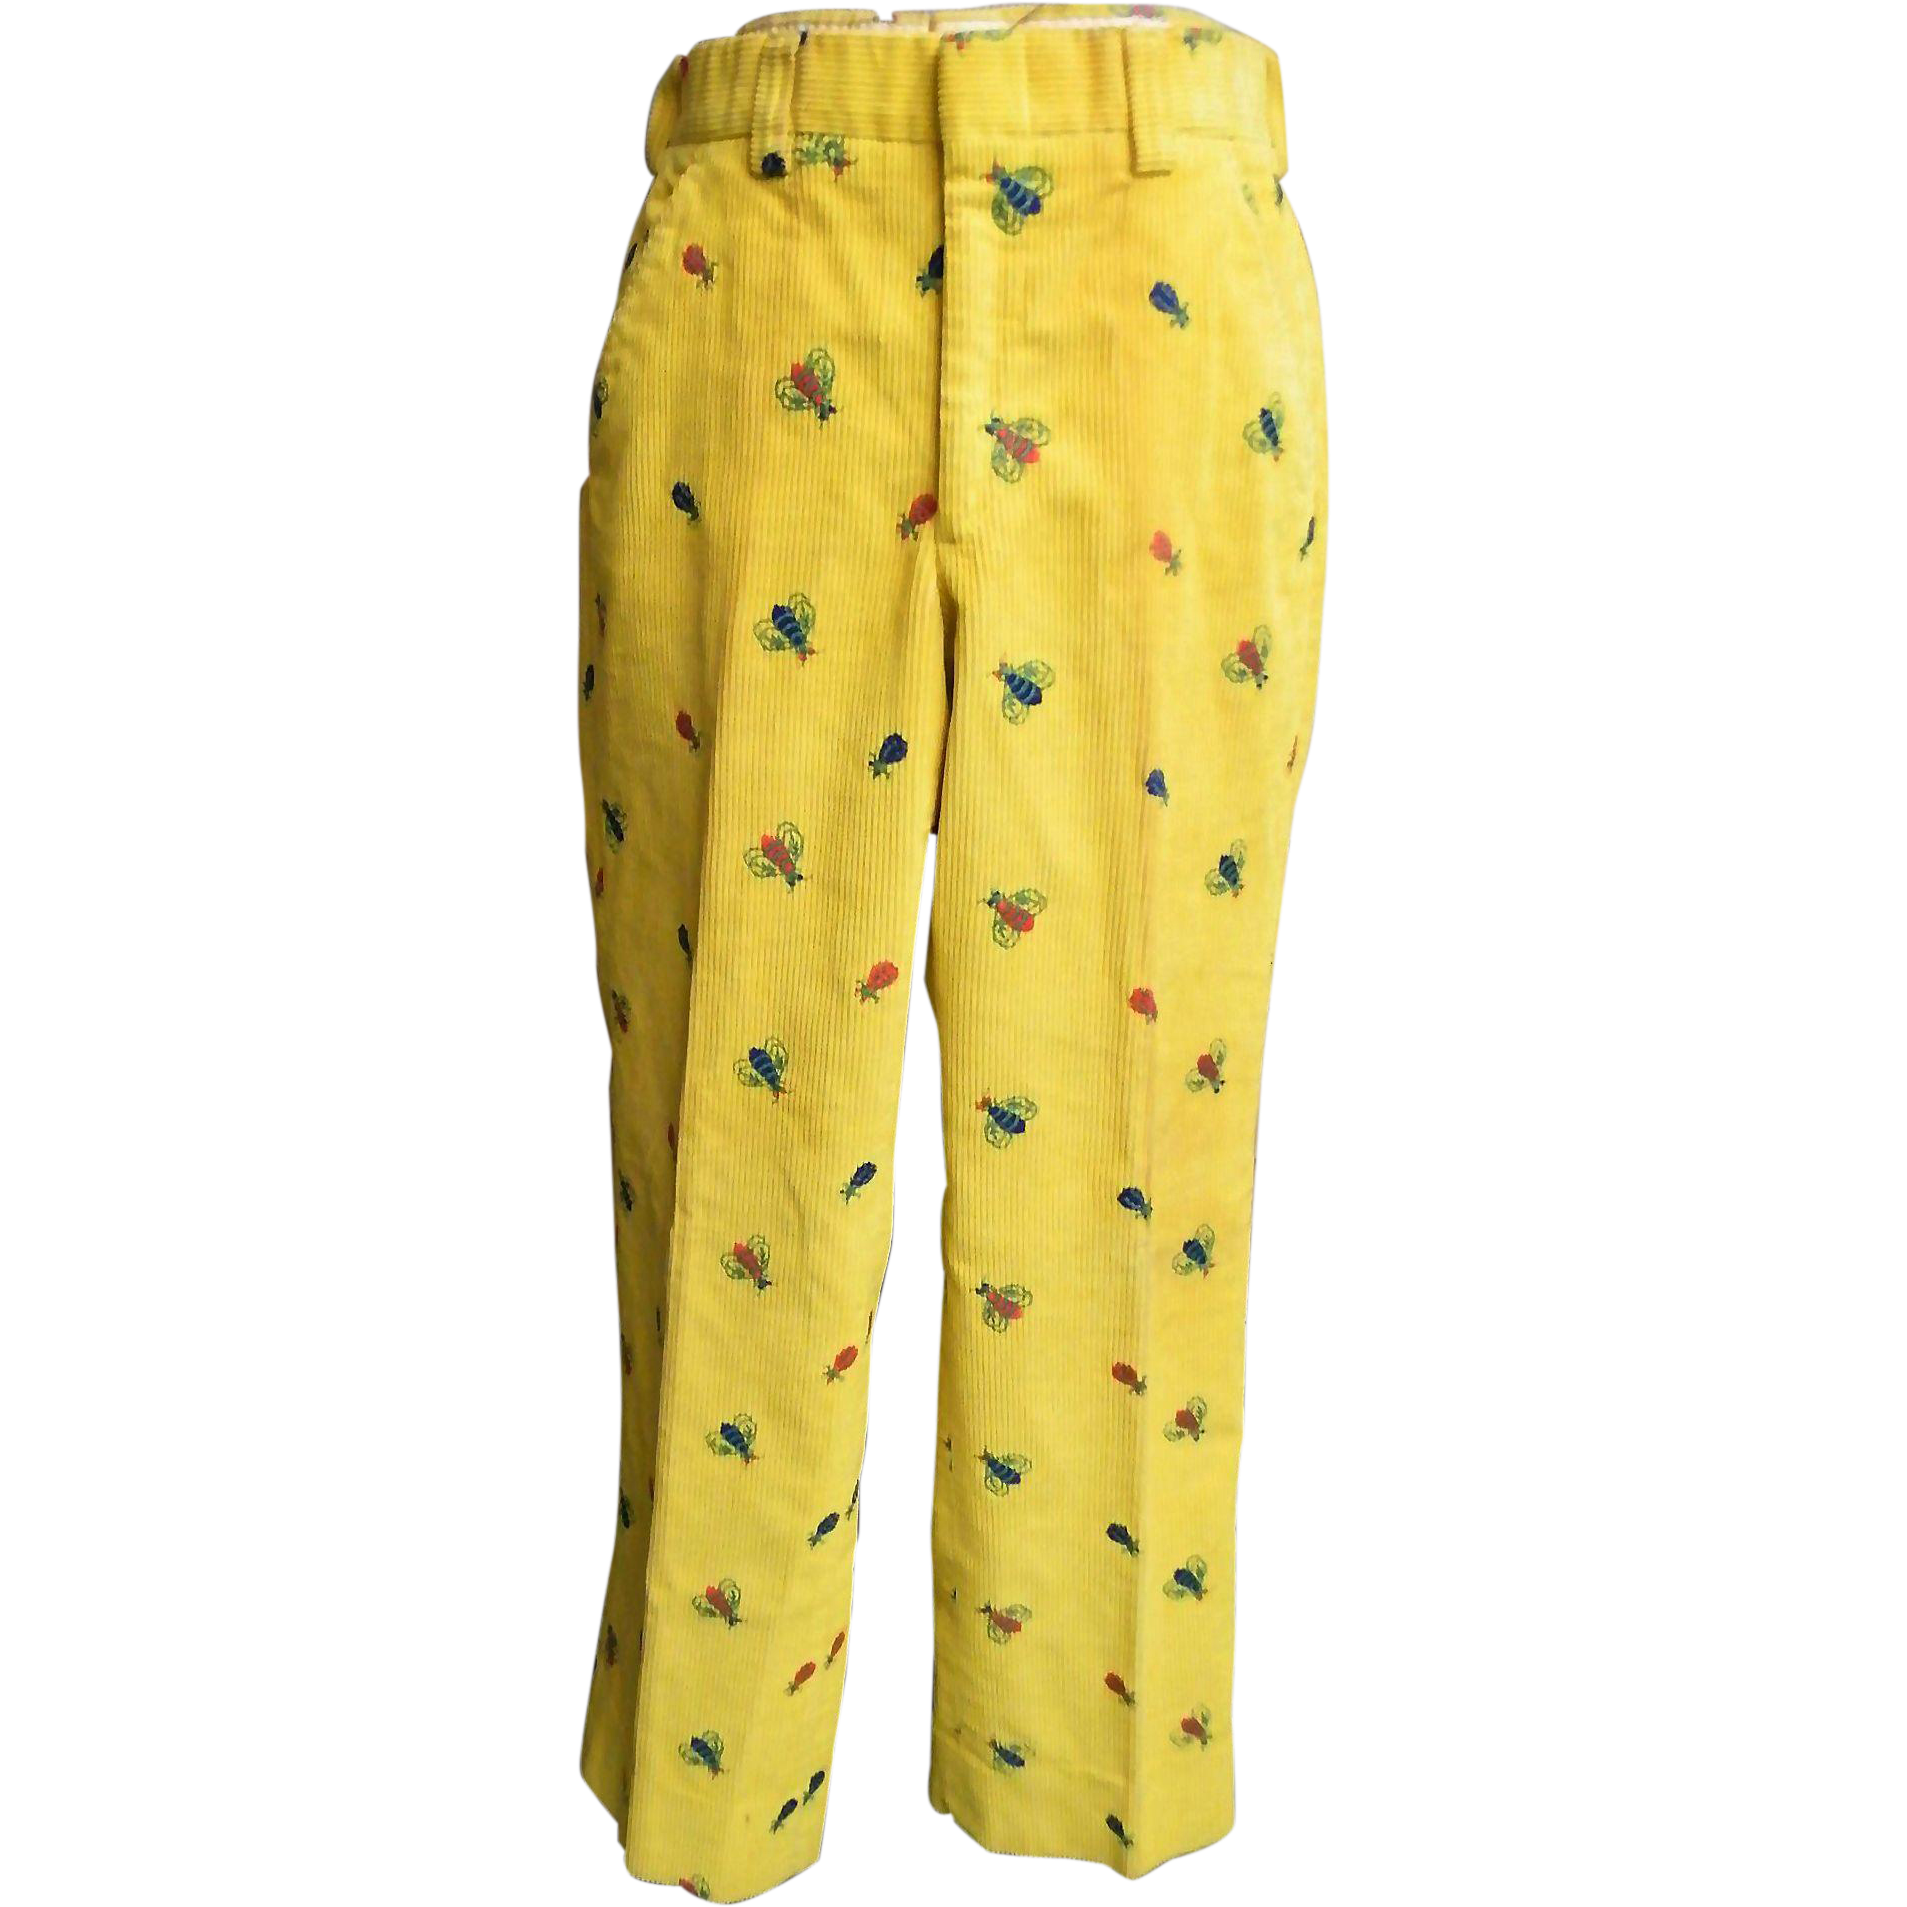 Men's Golf Slacks / Pants..Yellow Corduroy With Embroidery..1960's